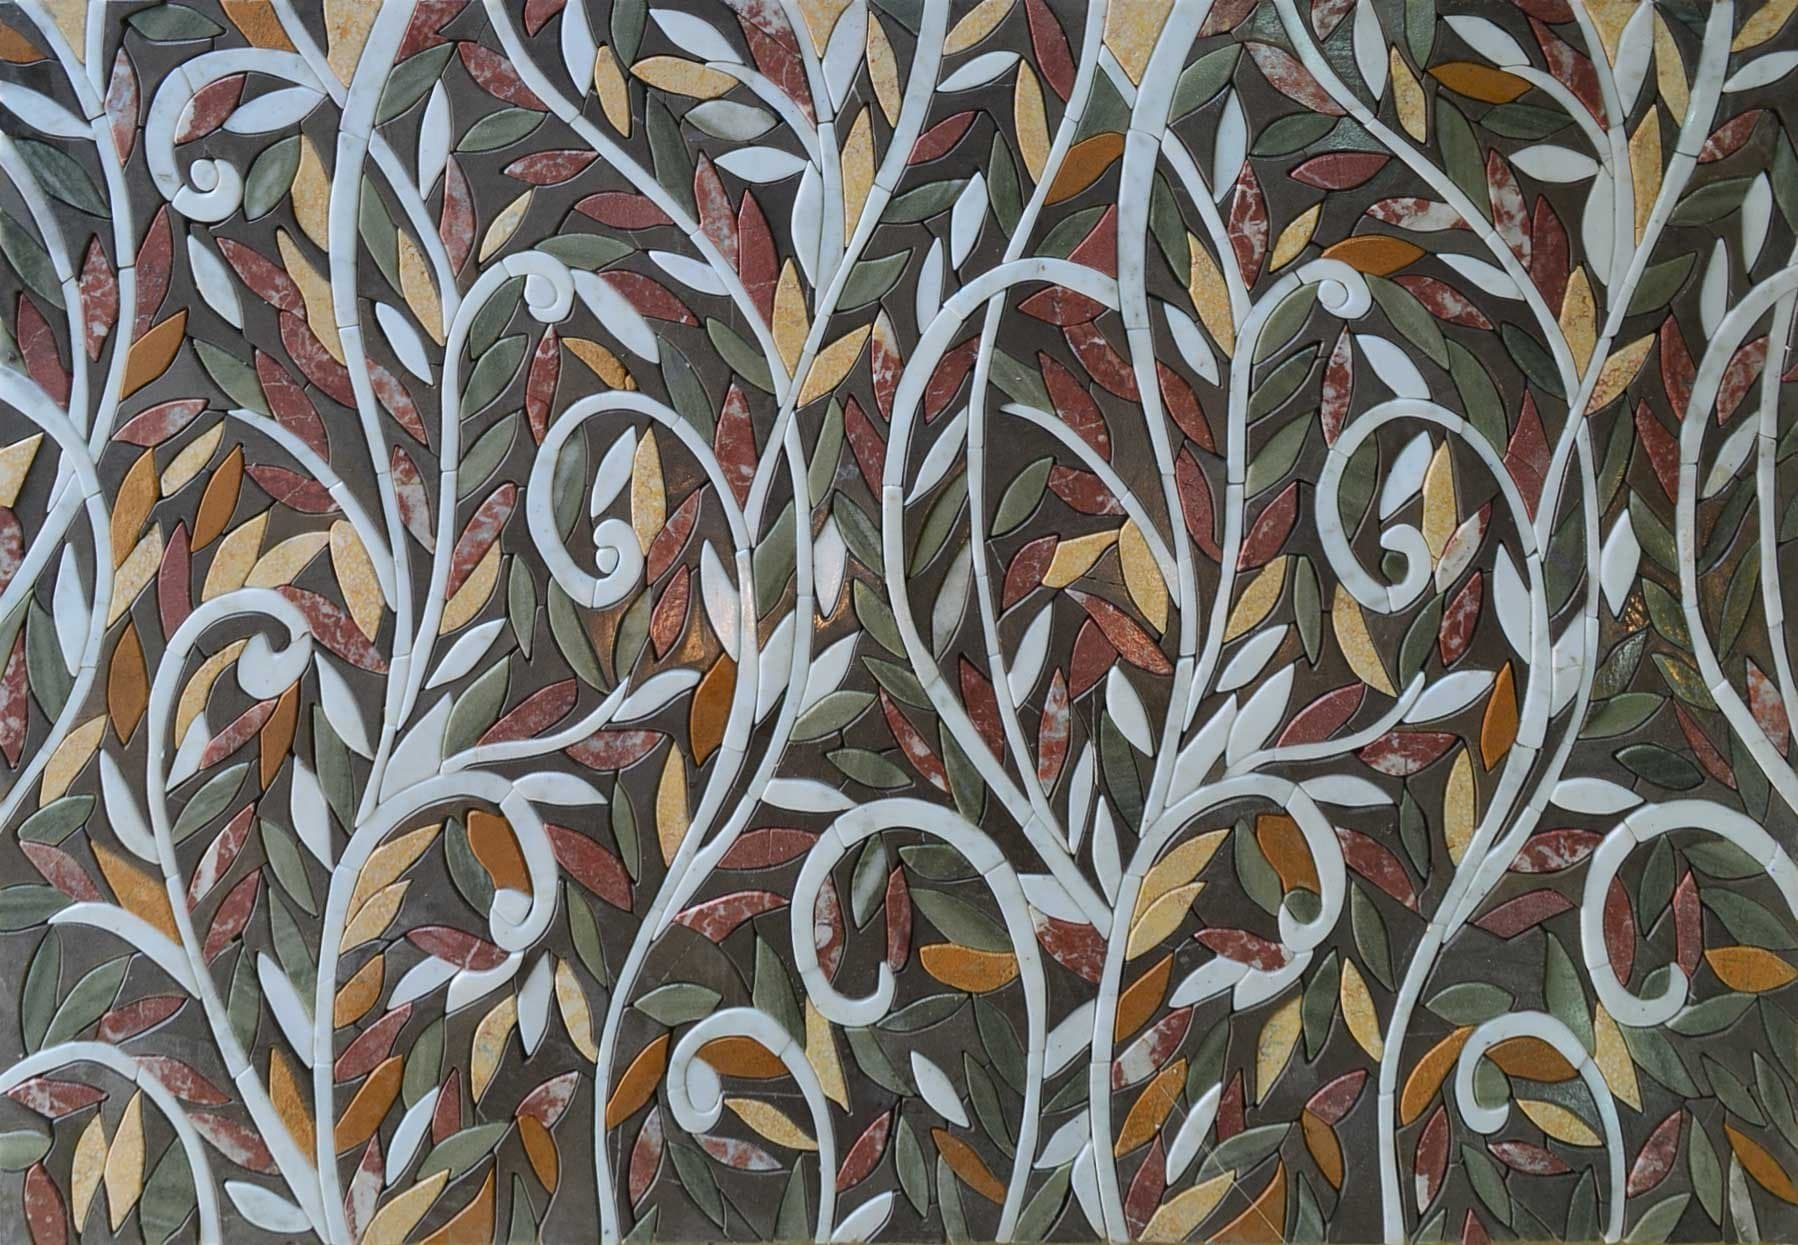 Mosaic Design - Abstract Entangled